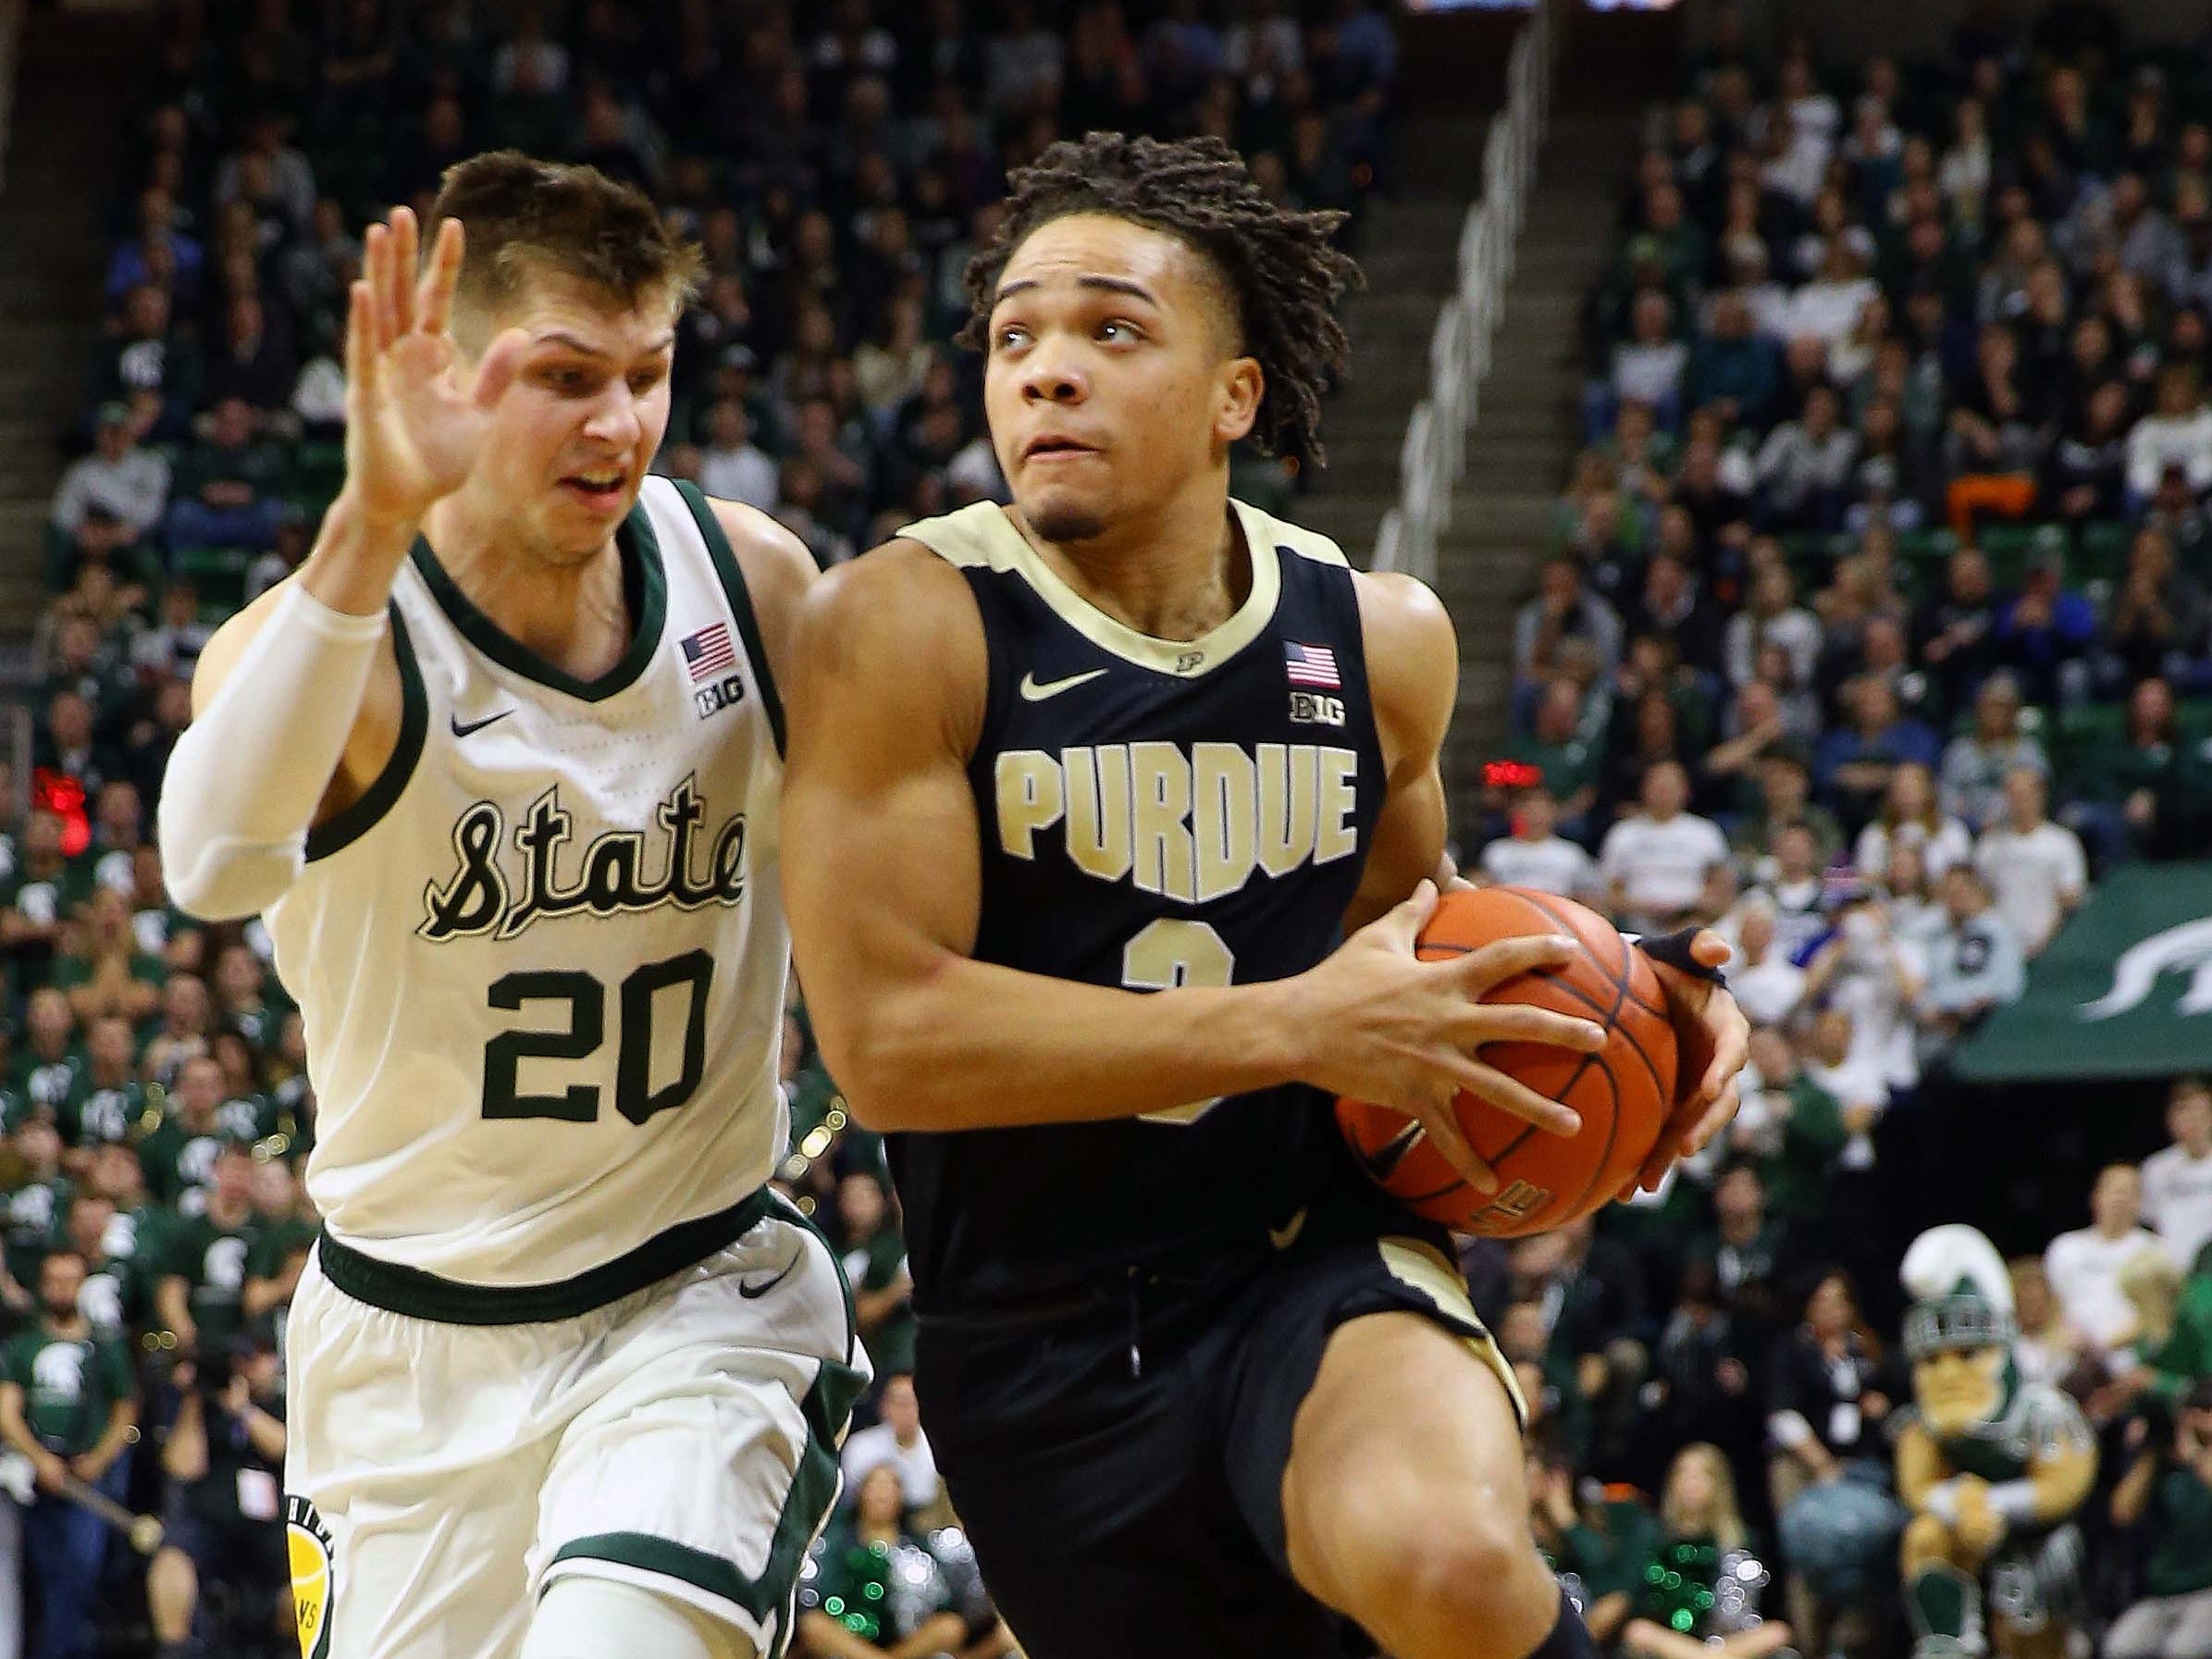 Purdue Boilermakers guard Carsen Edwards (3) is defended by Michigan State Spartans guard Matt McQuaid (20) during the first half of a game at the Breslin Center.